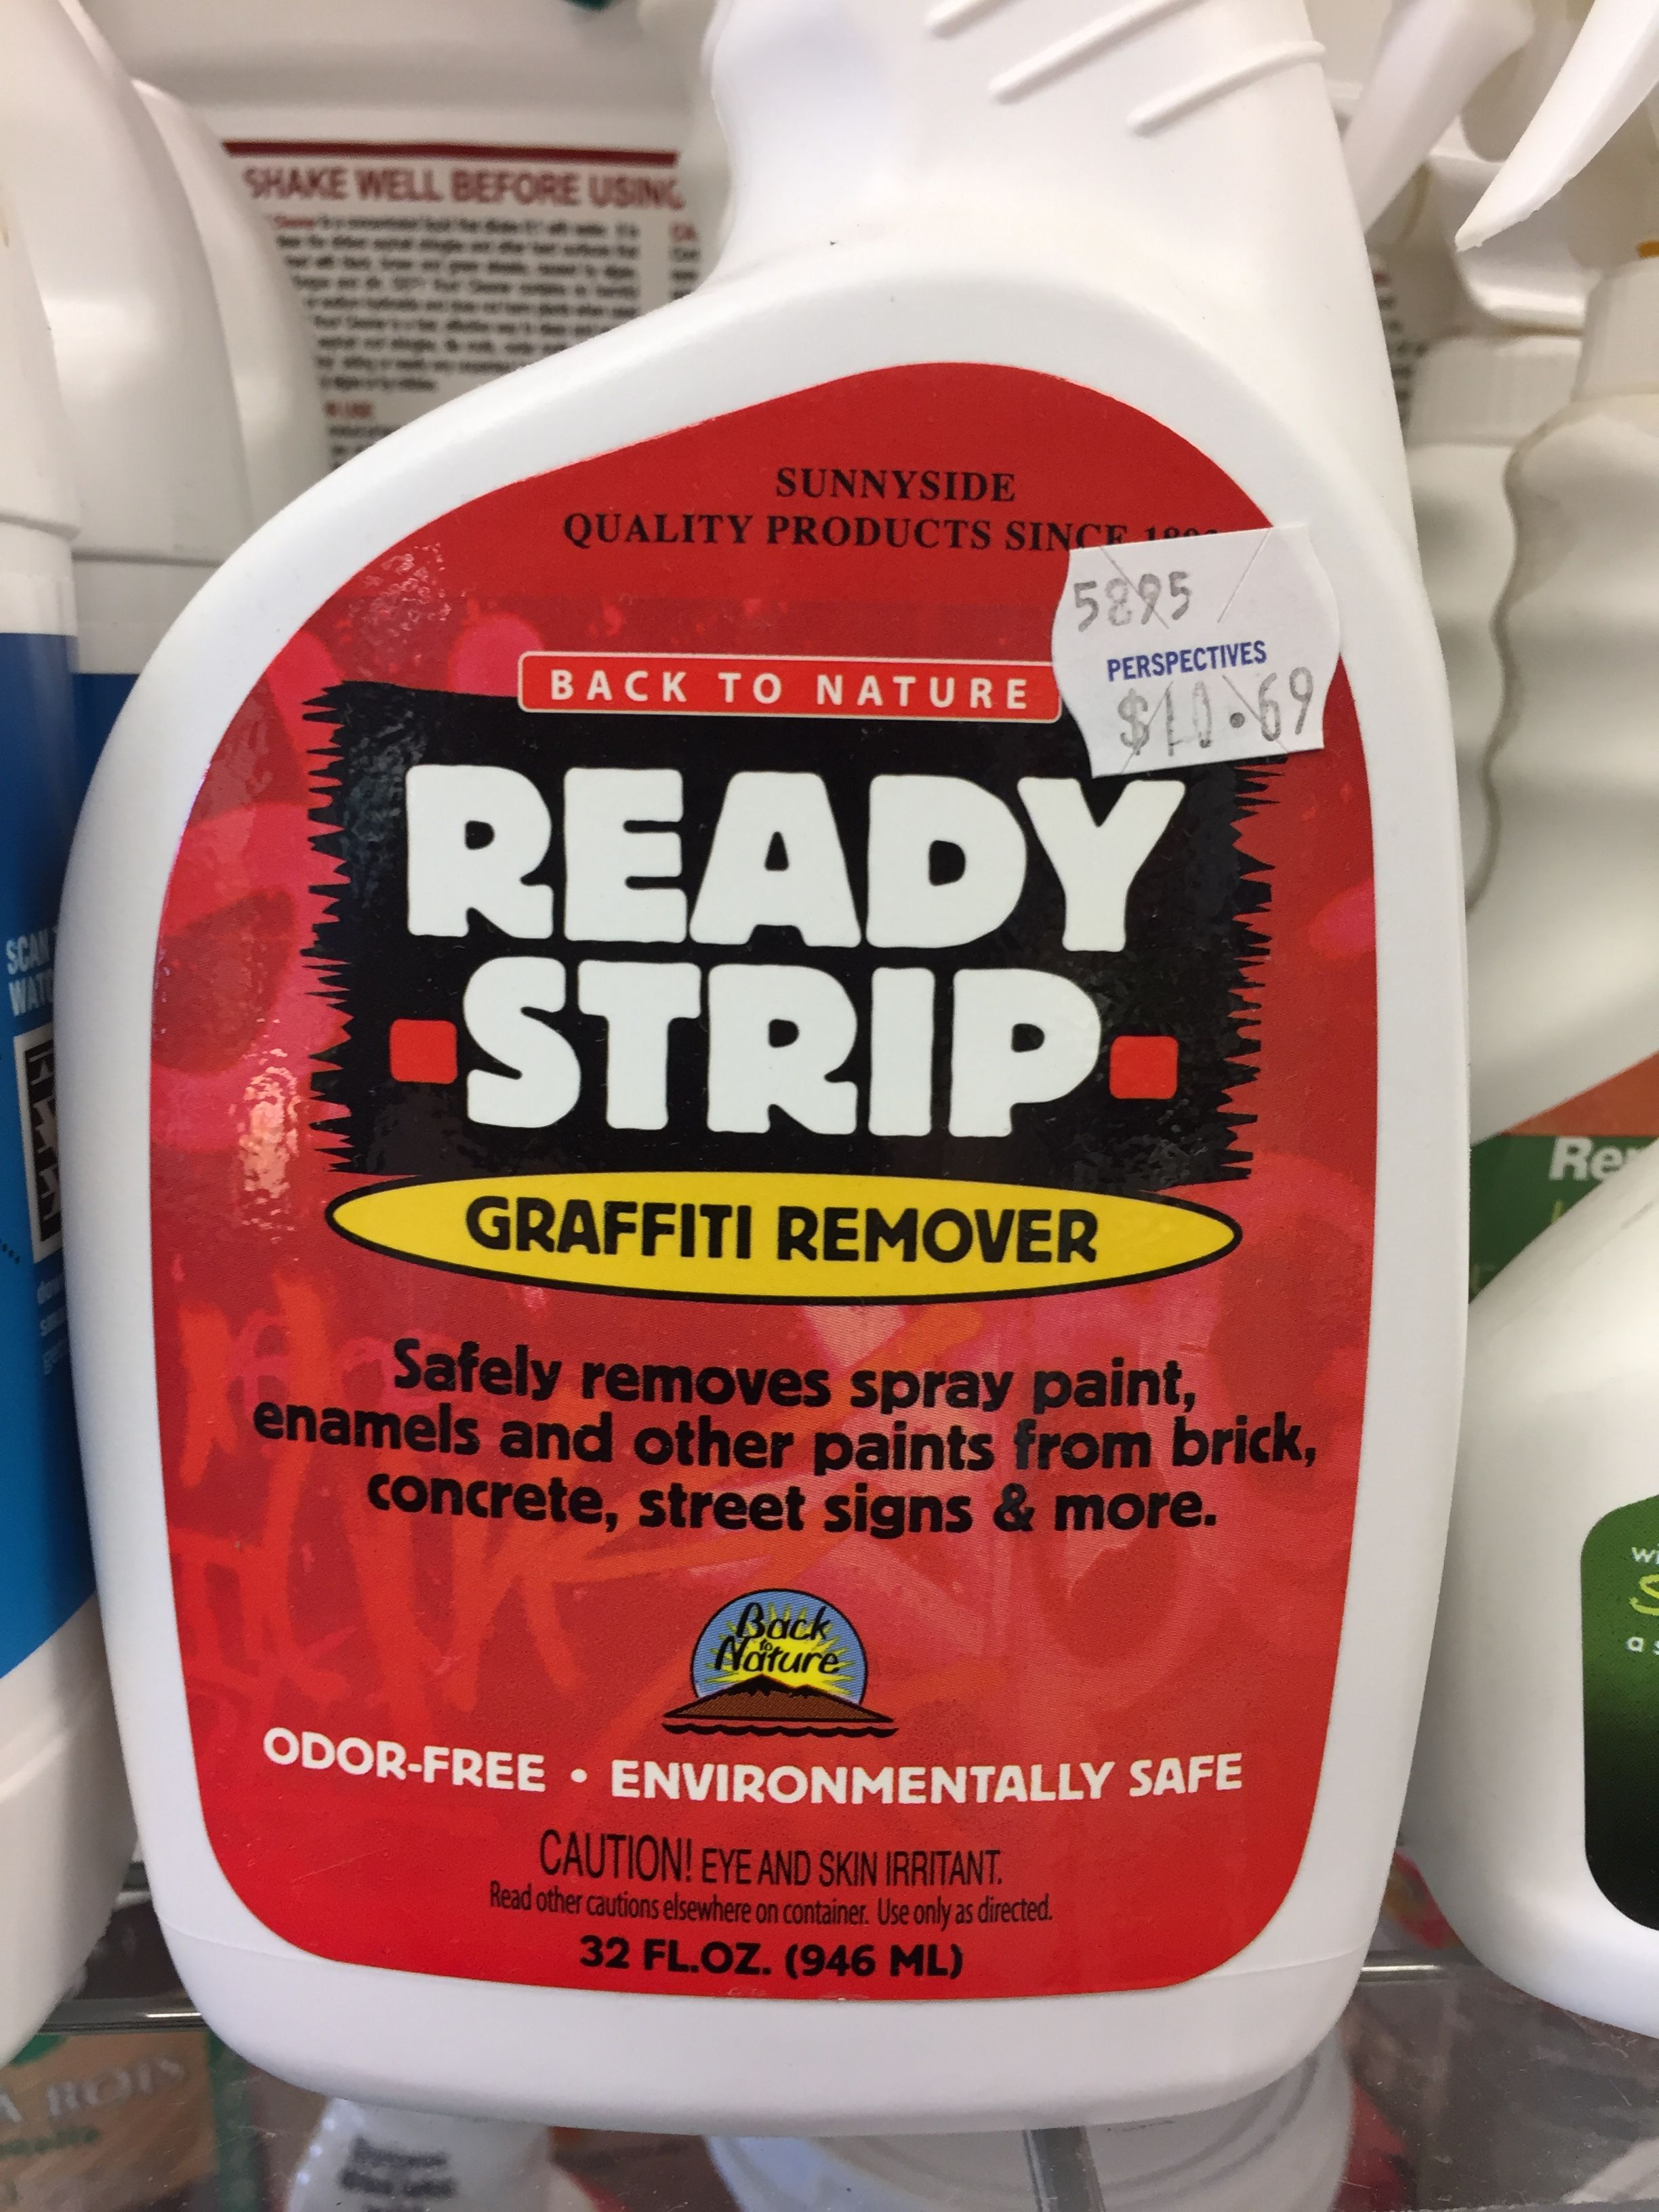 Back To Nature Ready Strip Graffiti Remover Is An Environmentally Safe Water Based Biodegrada Remove Paint From Concrete Paint Remover Biodegradable Products